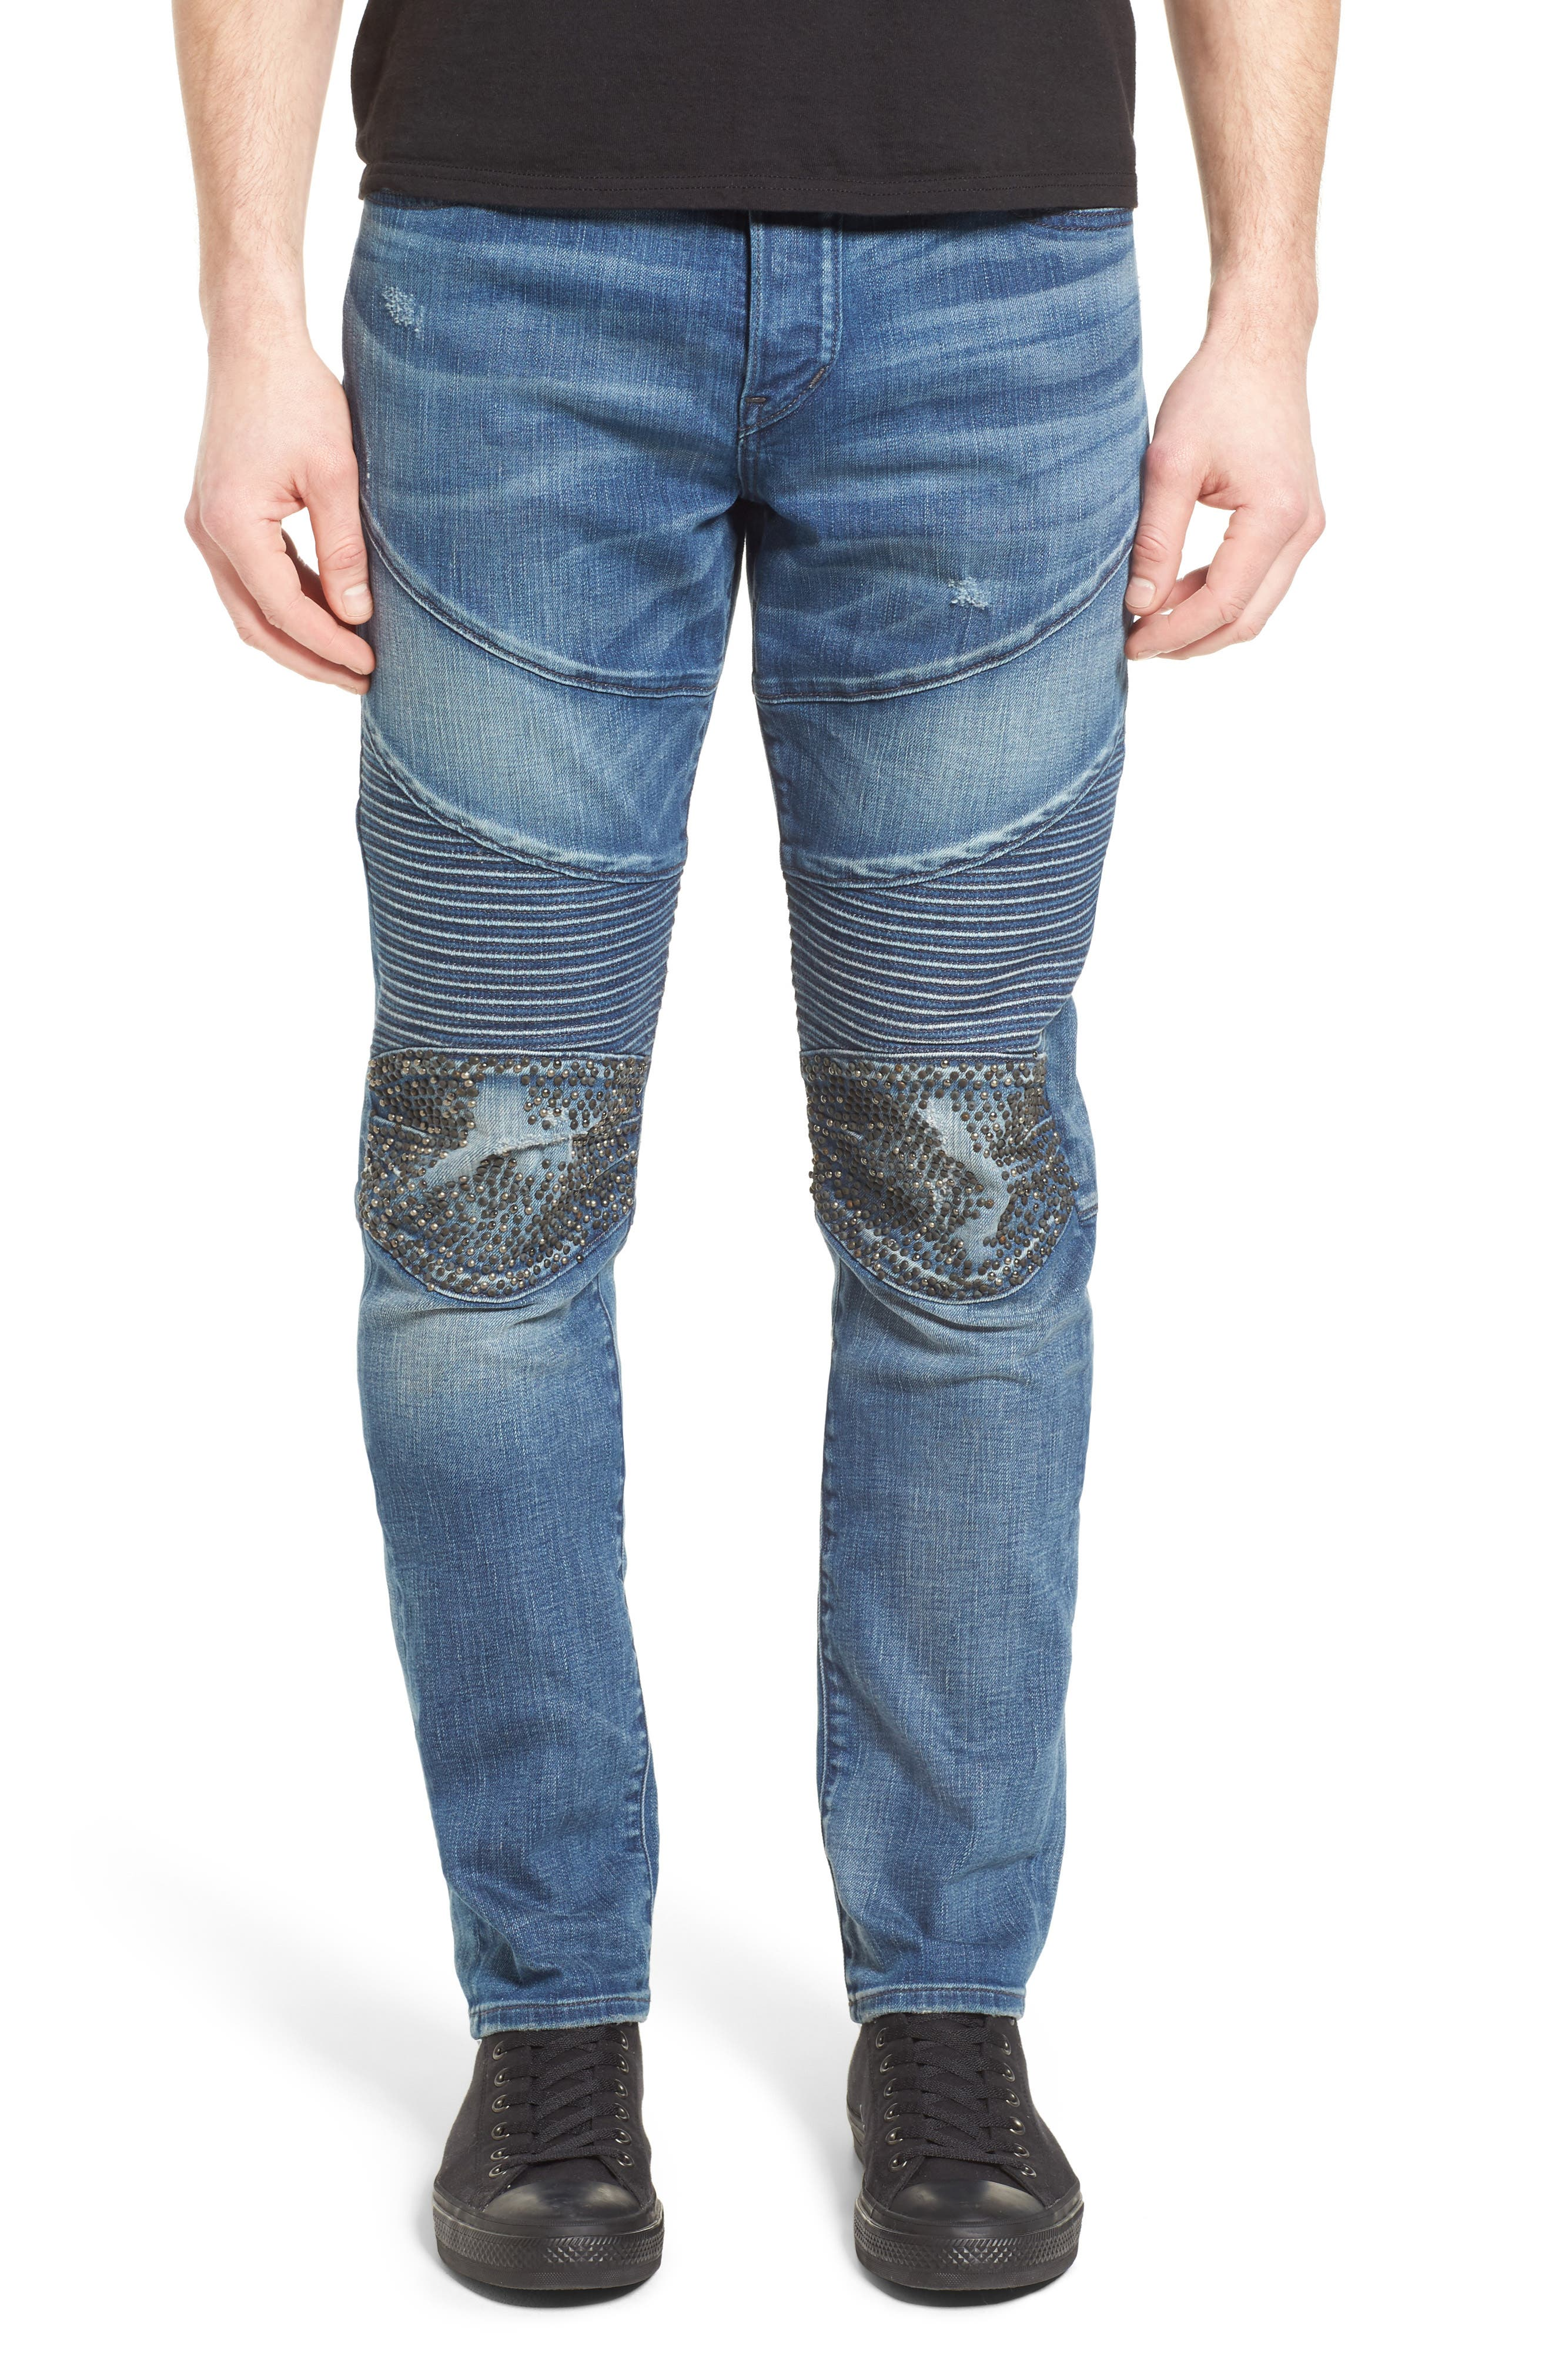 TRUE RELIGION BRAND JEANS Rocco Skinny Fit Jeans, Main, color, ENDLESS ROAD